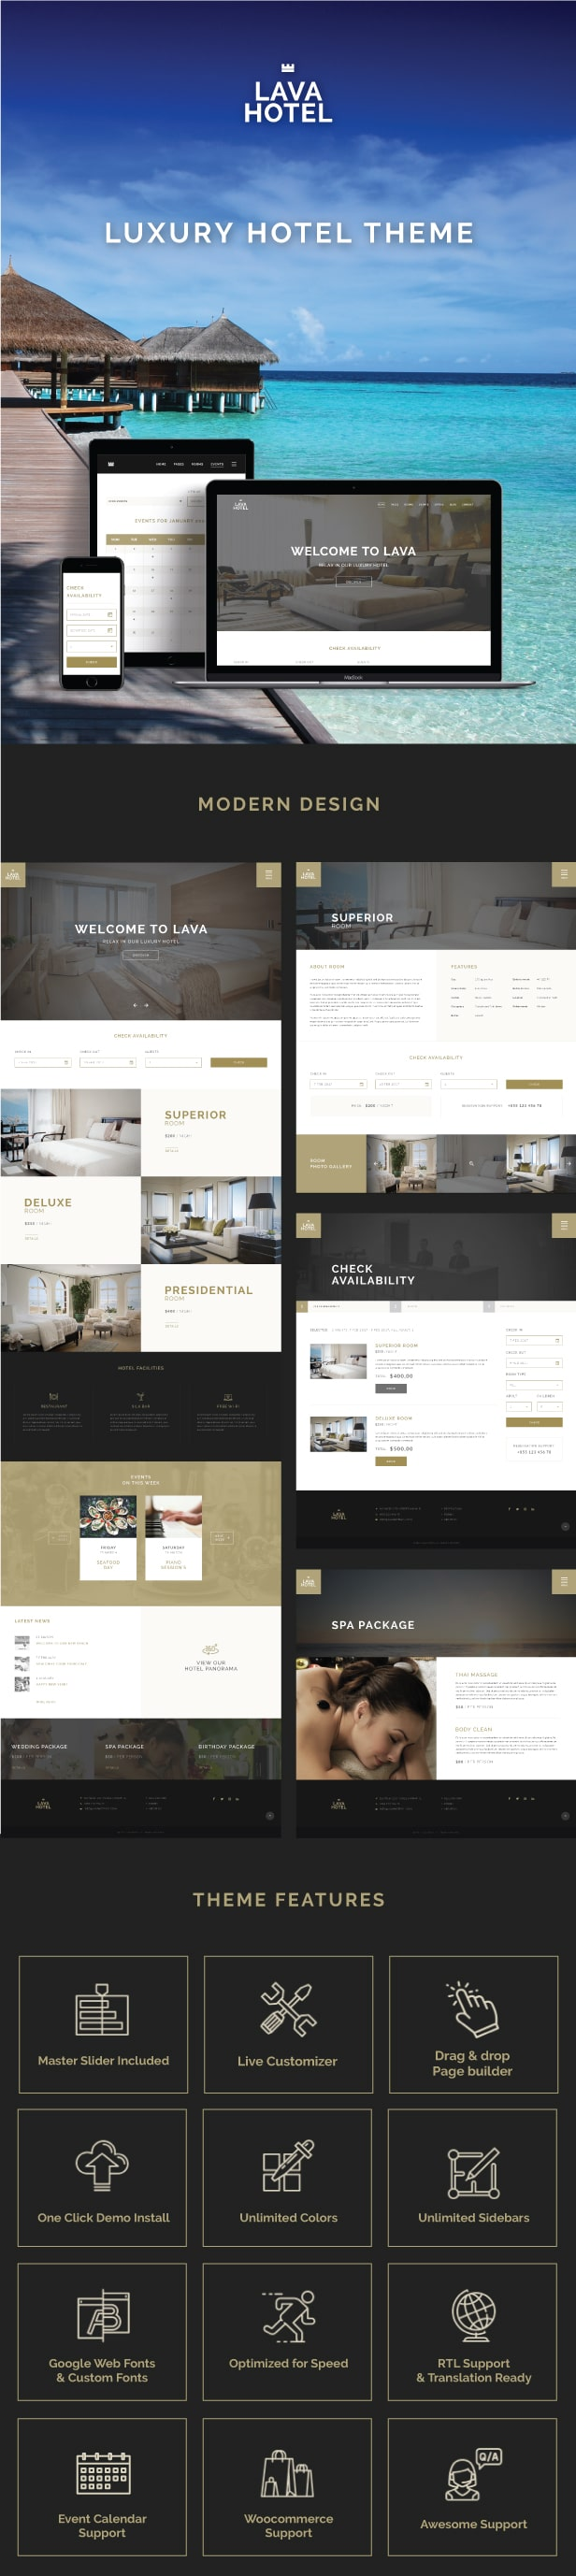 Lava - Luxury Hotel WordPress Theme - 3